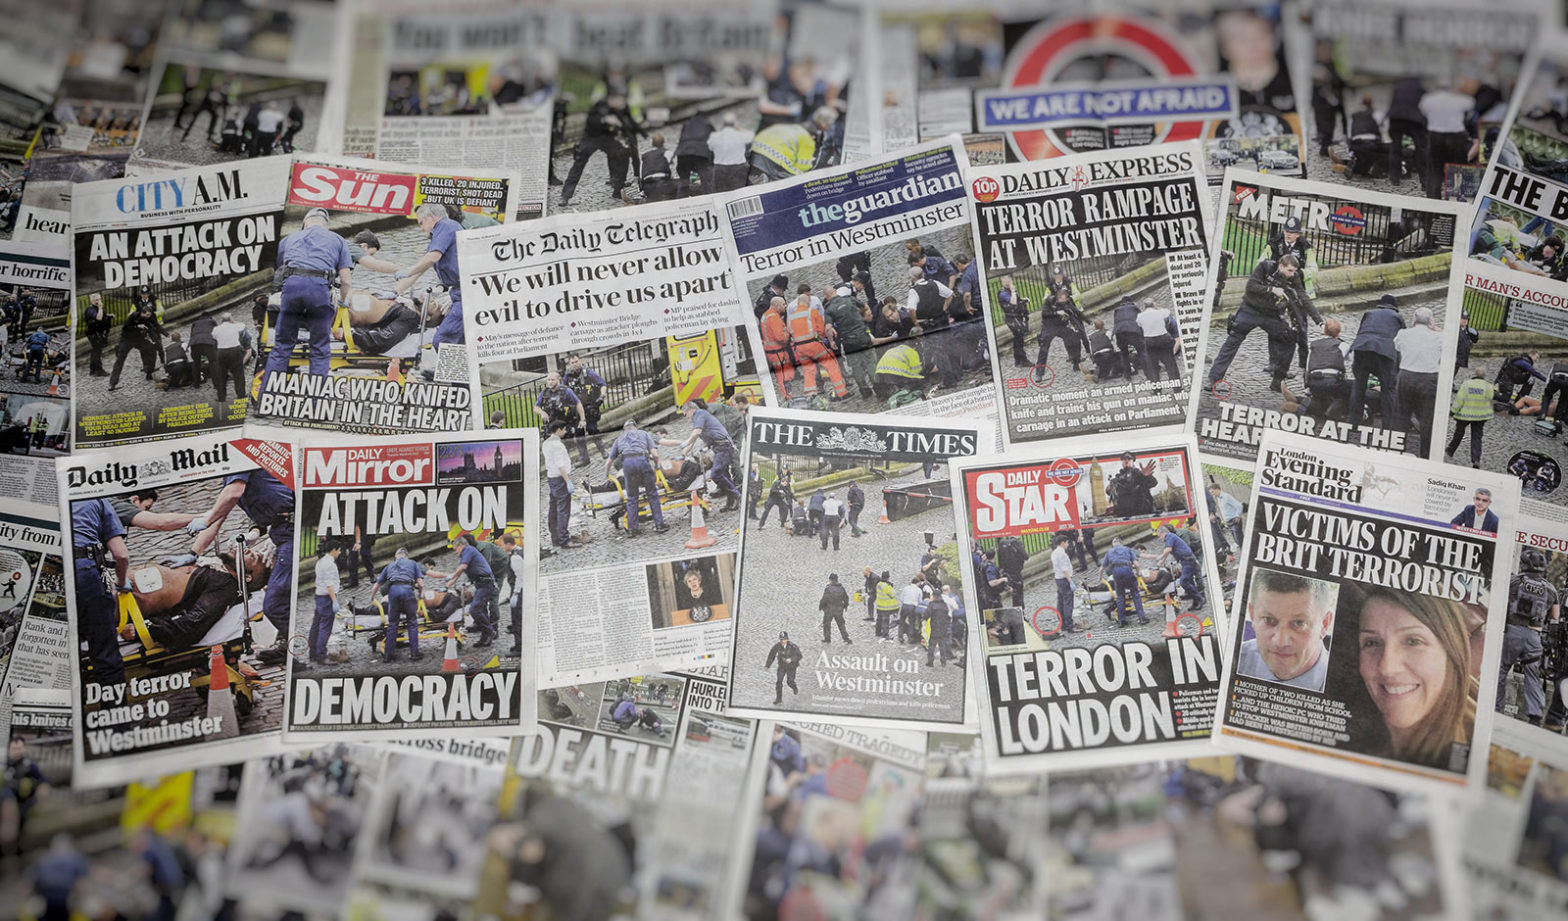 Newspaper covers about terrorism